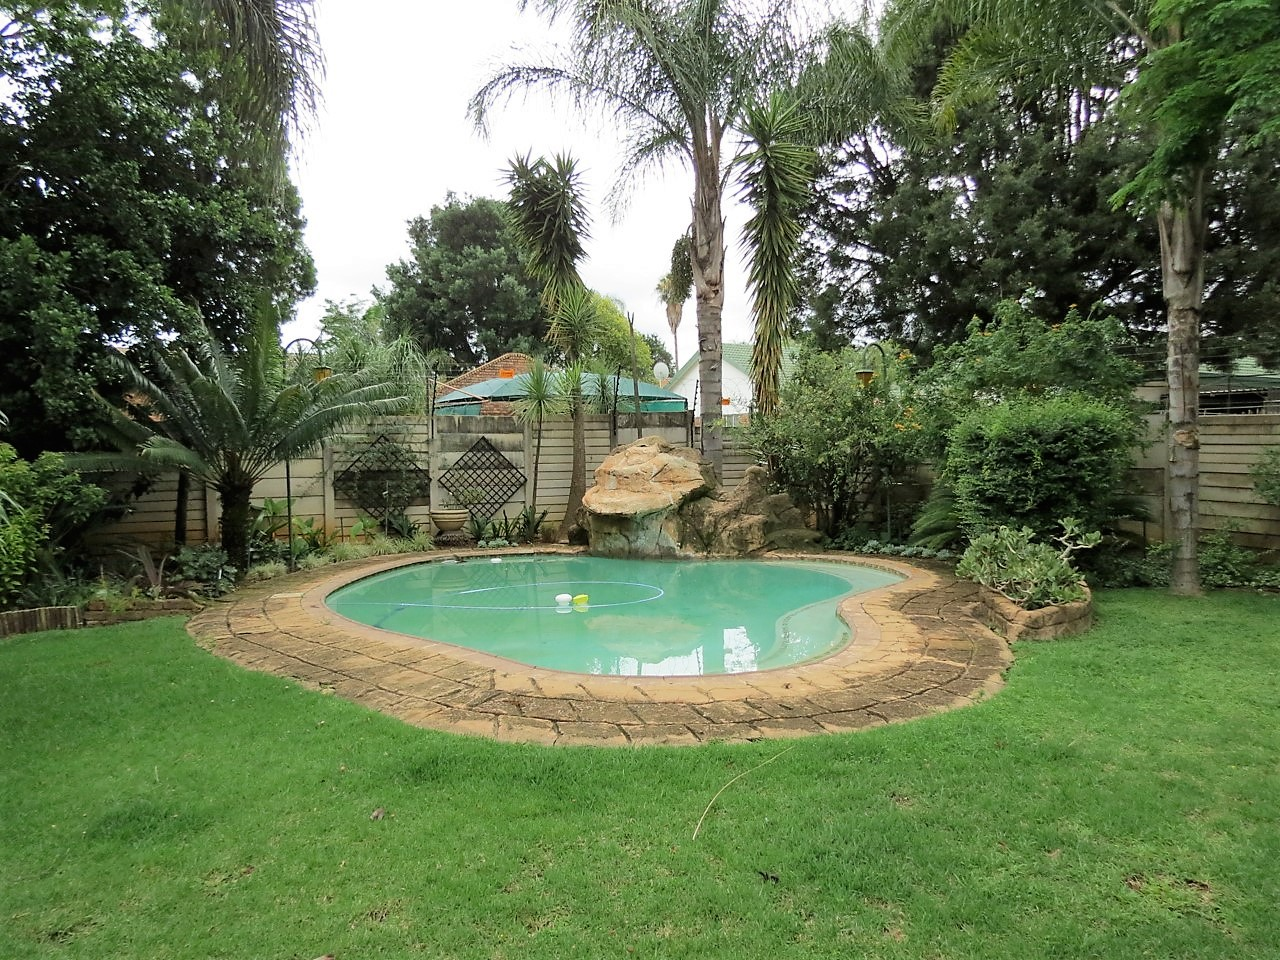 WAVERLEY : 3 BEDROOM HOUSE WITH BACHELOR FLAT TO RENT